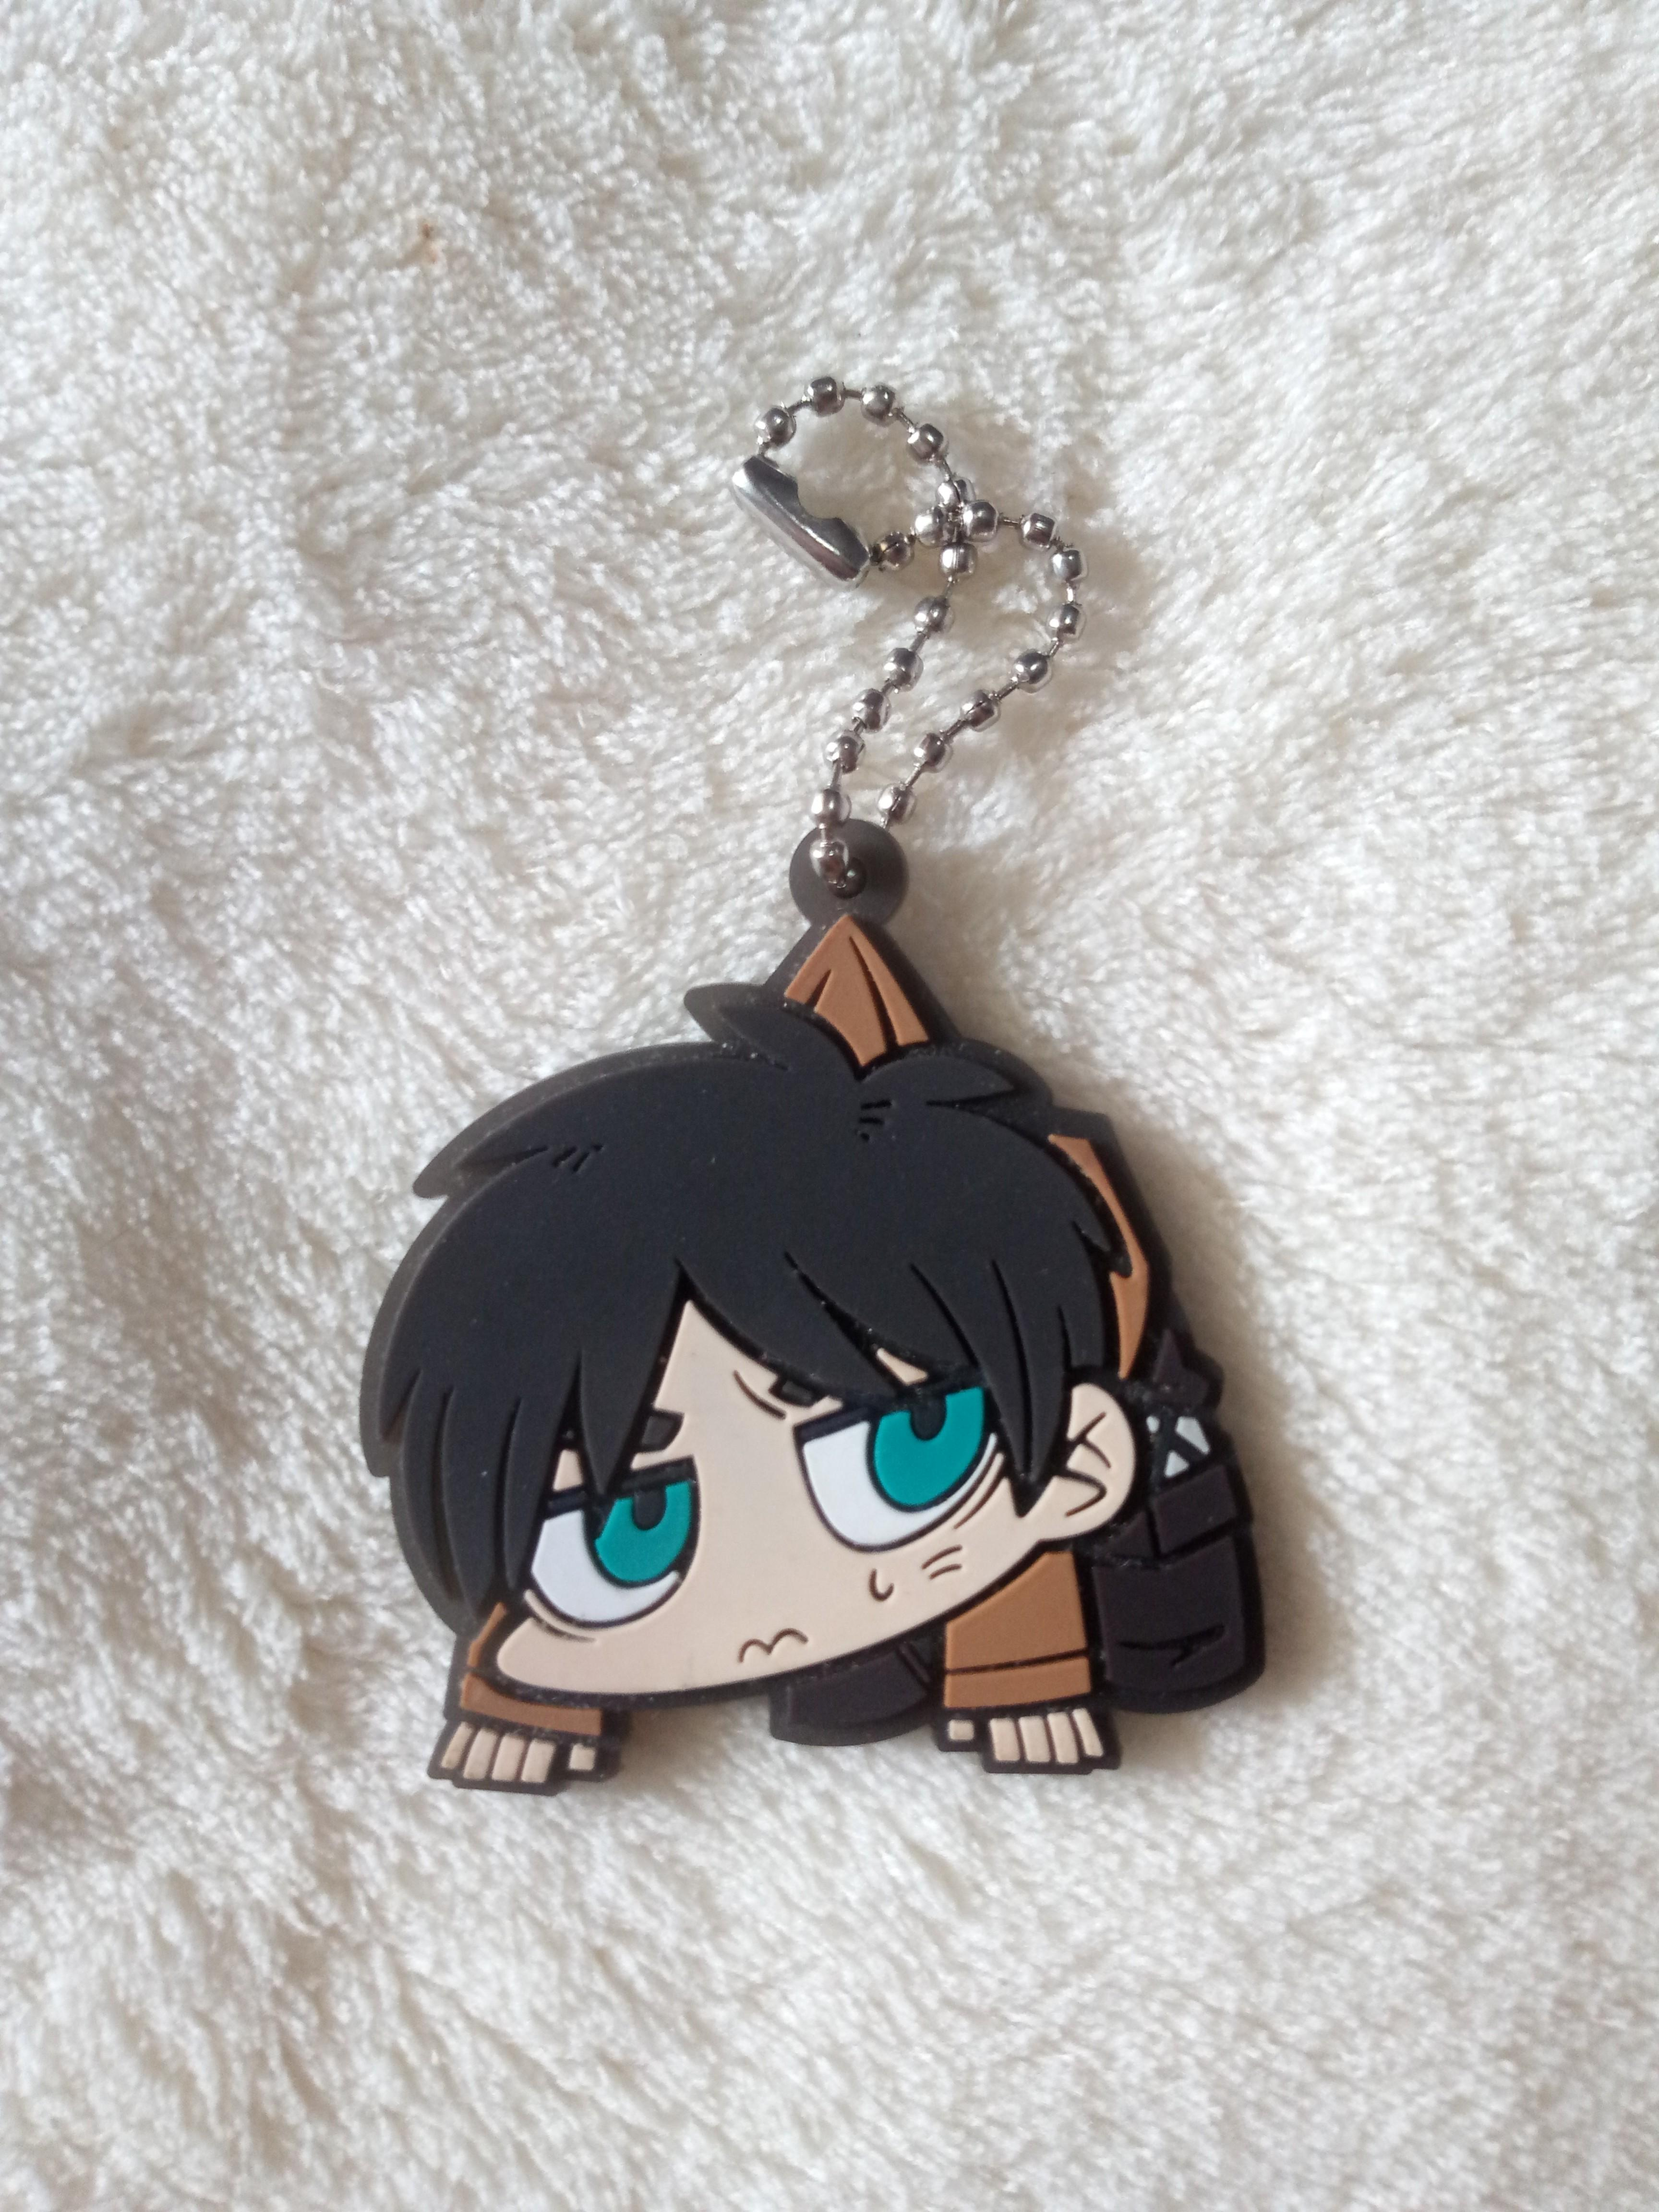 Anime Attack on Titan Shingeki no Kyojin keychain set